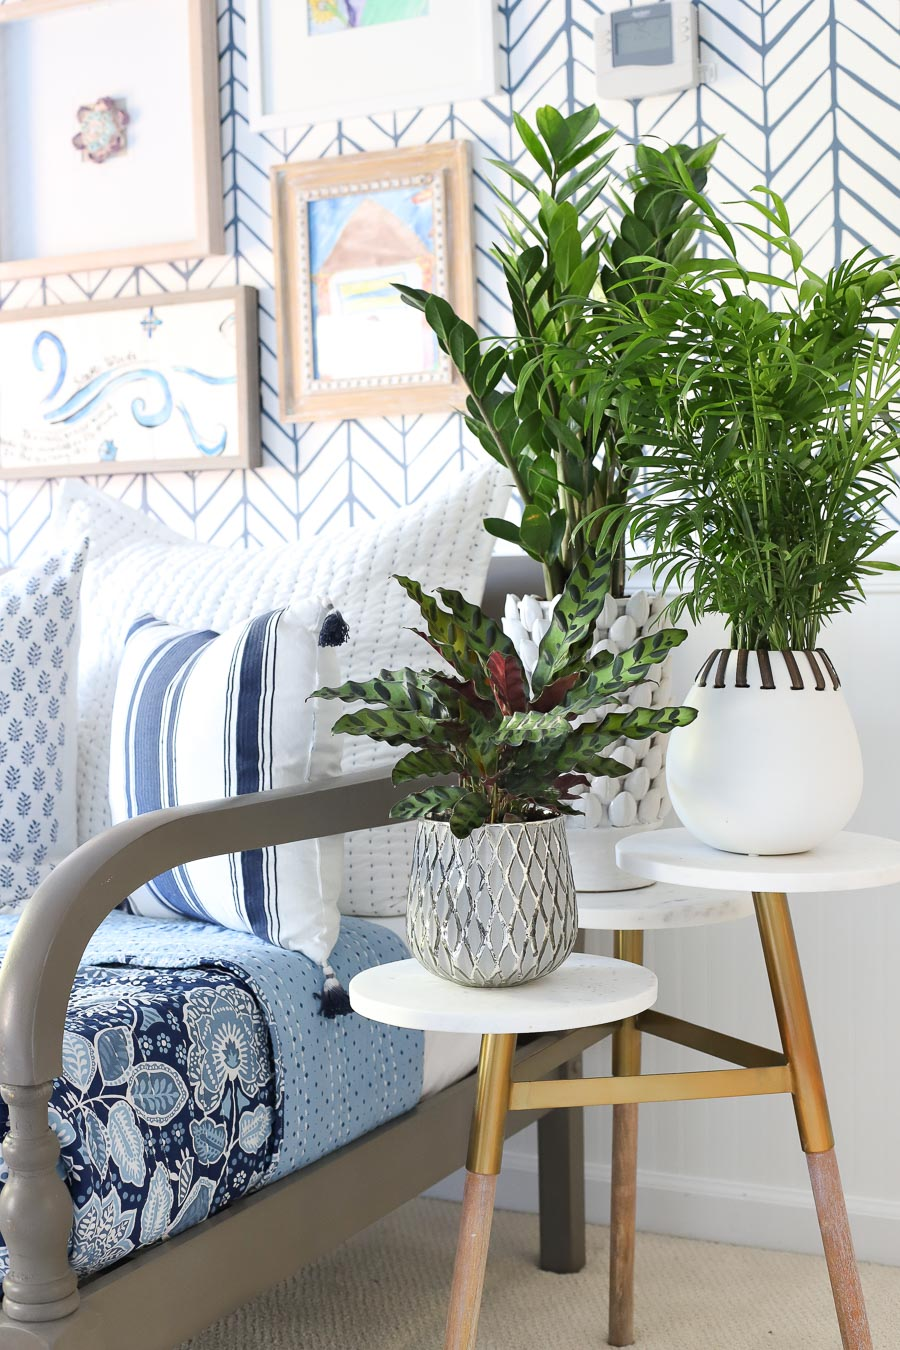 Loving this tiered marble side table - looks beautiful with plants and would also be perfect for holding multiple drinks!